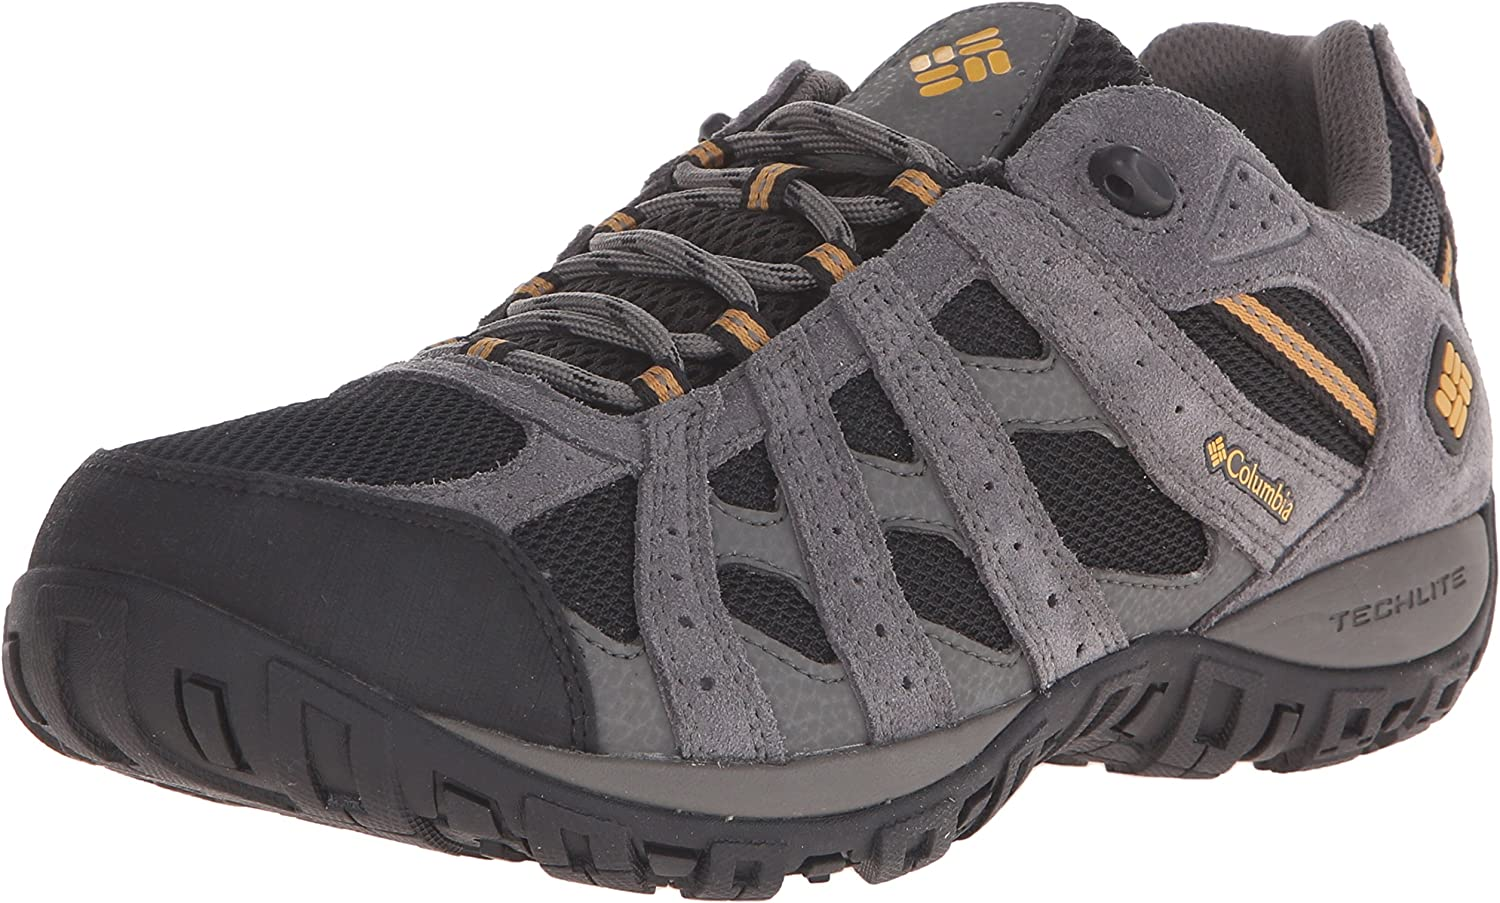 Columbia Men's rotmond Waterproof Wide Hiking schuhe, schwarz, Squash, 8.5 2E US